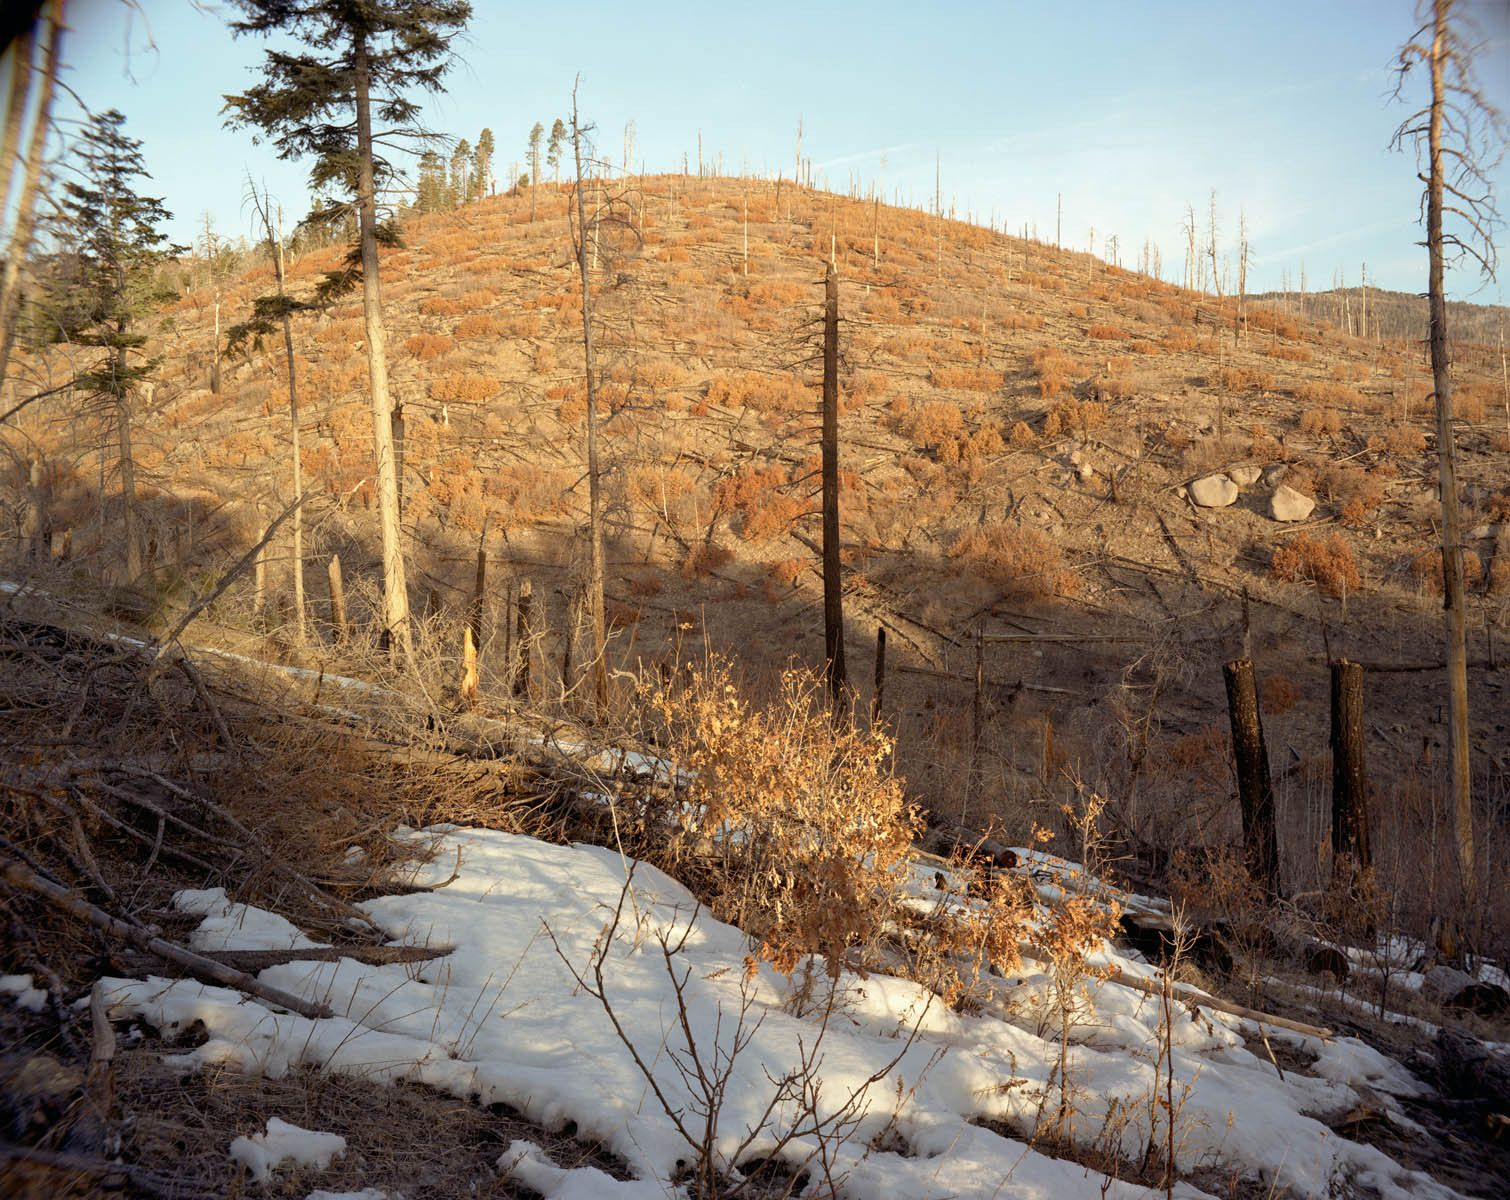 2000 Cerro Grande Fire, Vicinity of Los Alamos, New Mexico-9 Years Later